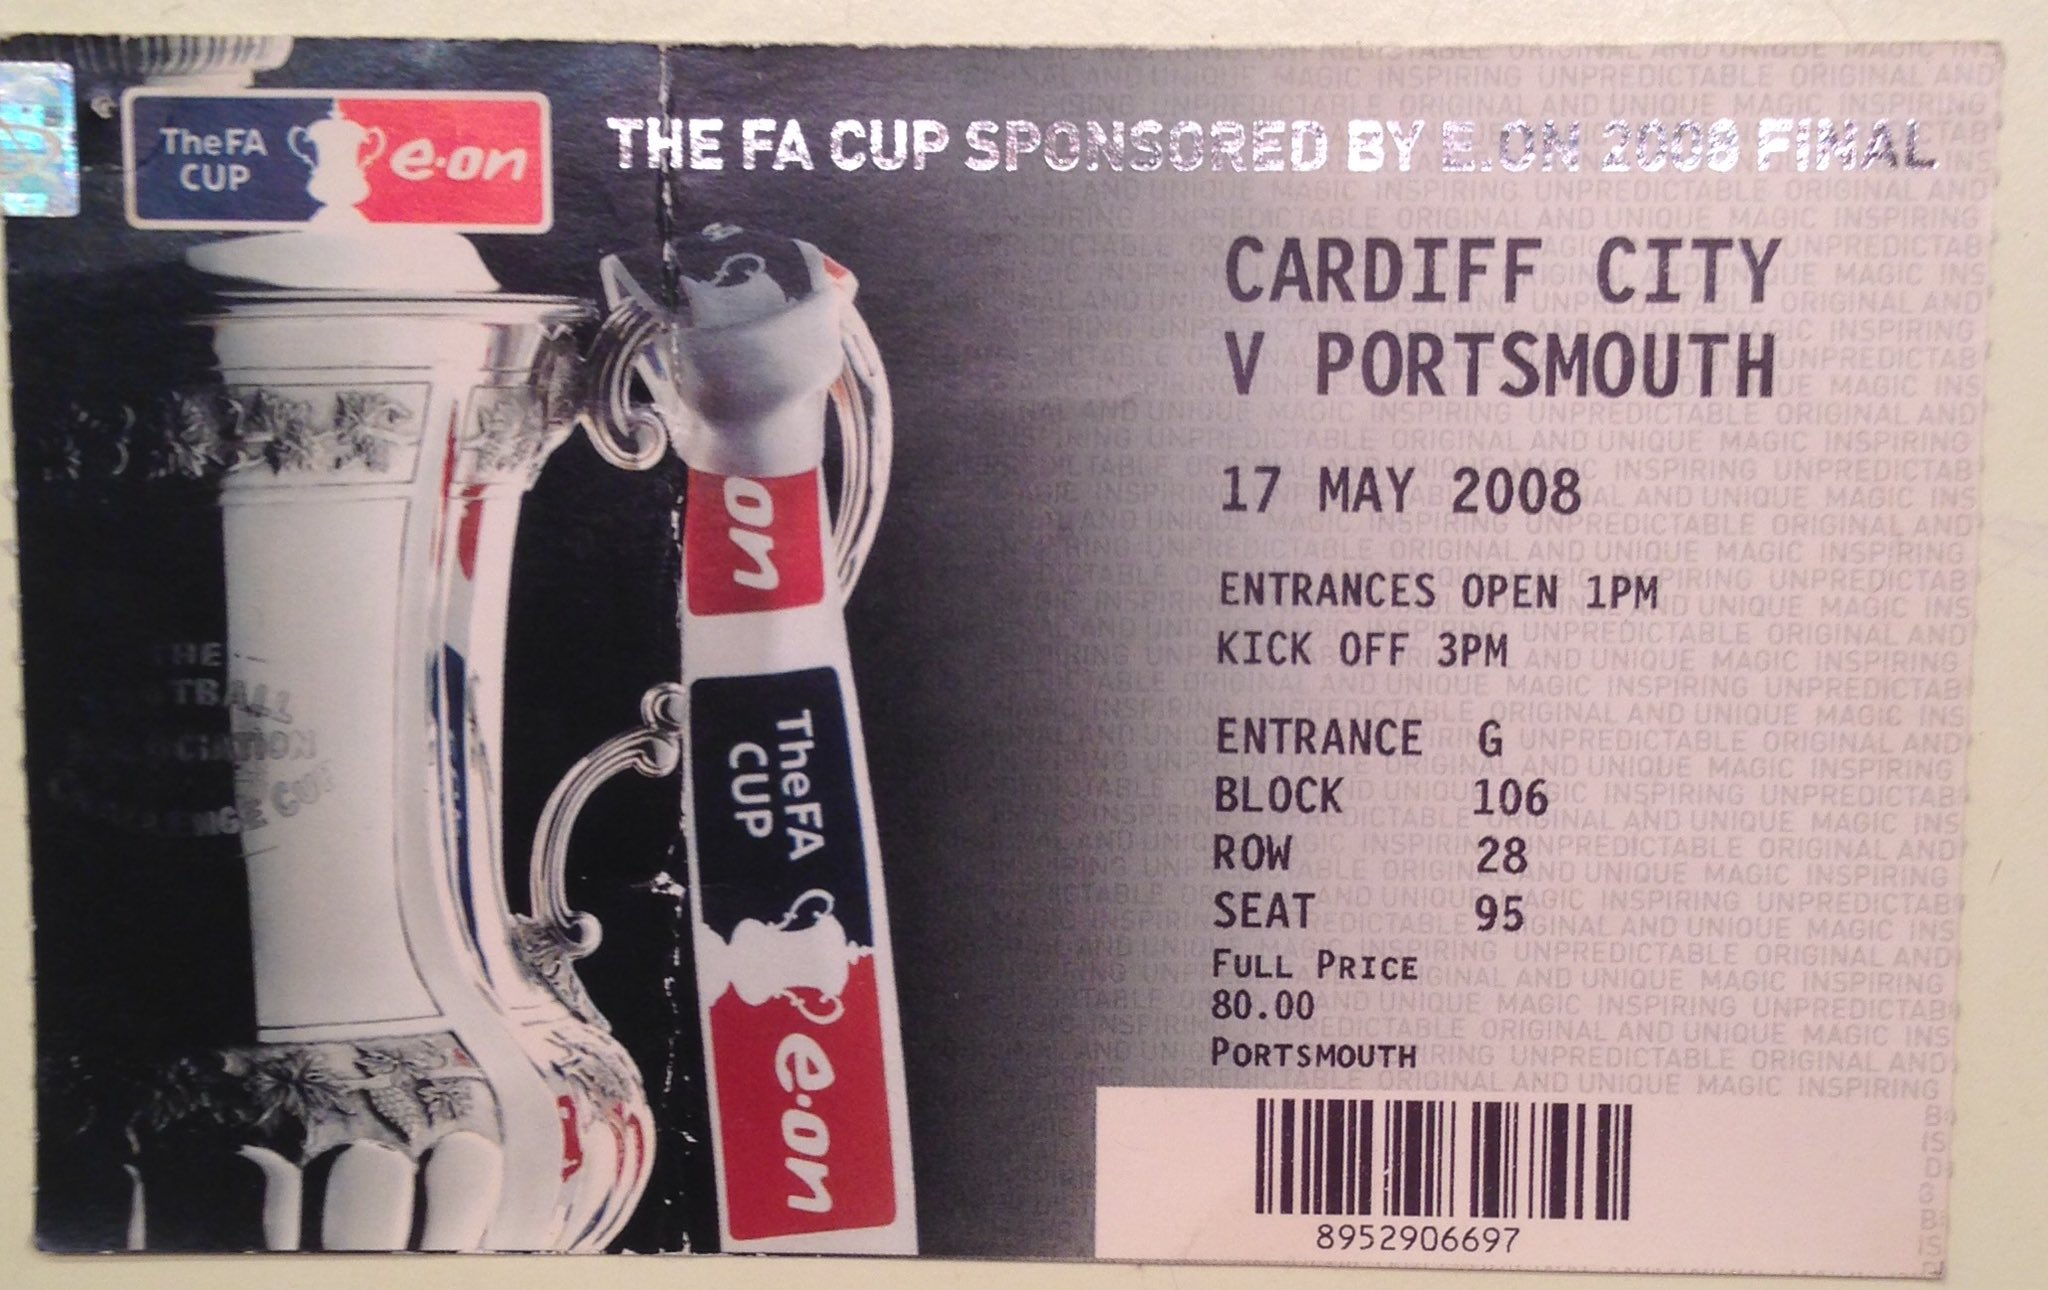 #Pompey fans before leaving home #OTD 10 years ago:  Cup final ticket ✅ Keys ✅ Cup final ticket ✅ Wallet ✅ Cup final ticket ✅ Cup final ticket ✅ Cup final ticket ✅  We couldn't be too careful! #PompeyHistory https://t.co/WebTj3rrLB